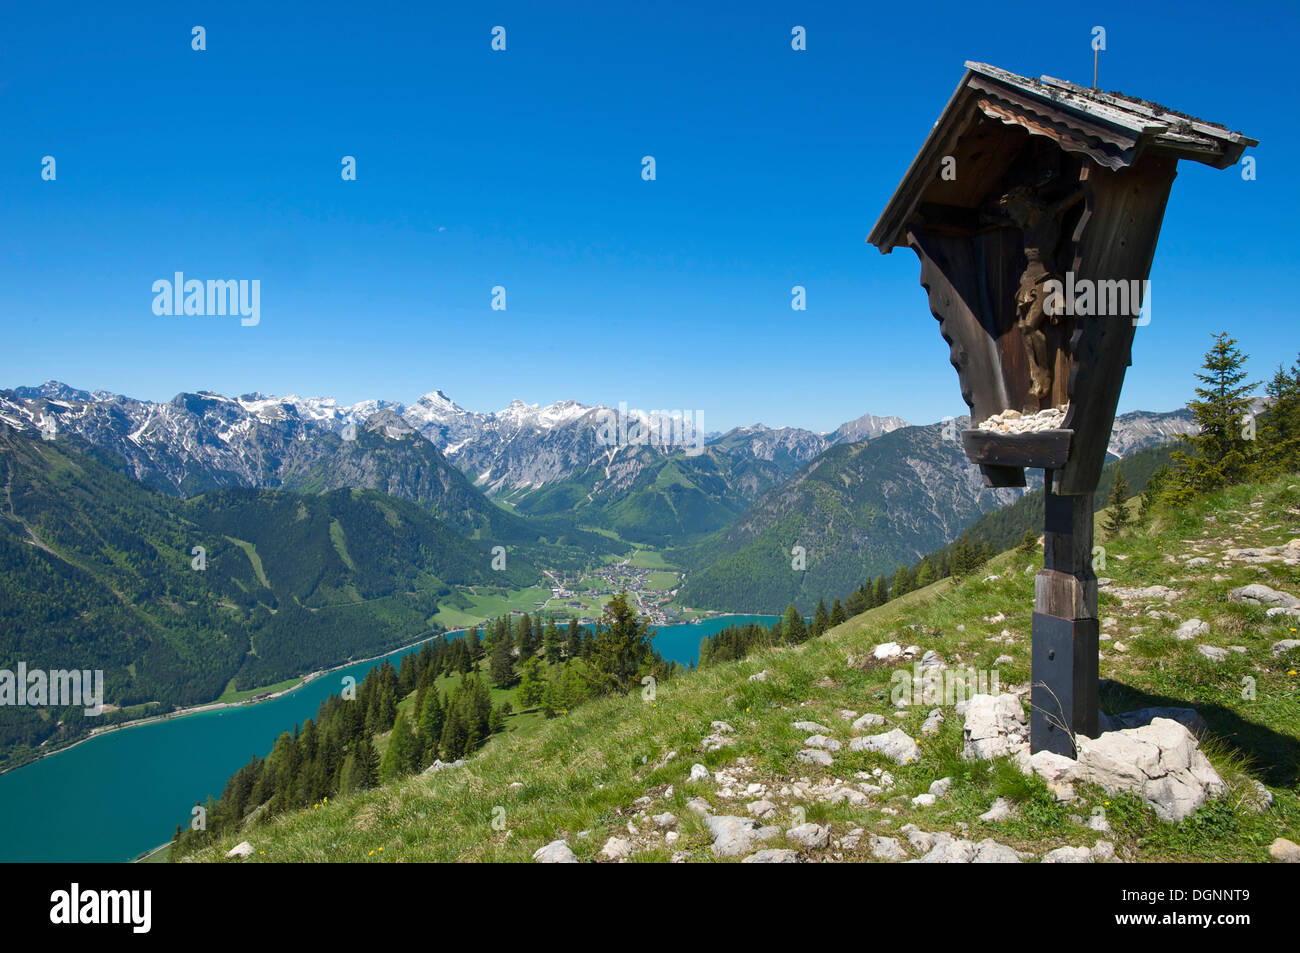 View from the Durrakreuz viewing point on Lake Achensee, Tyrol, Austria, Europe - Stock Image